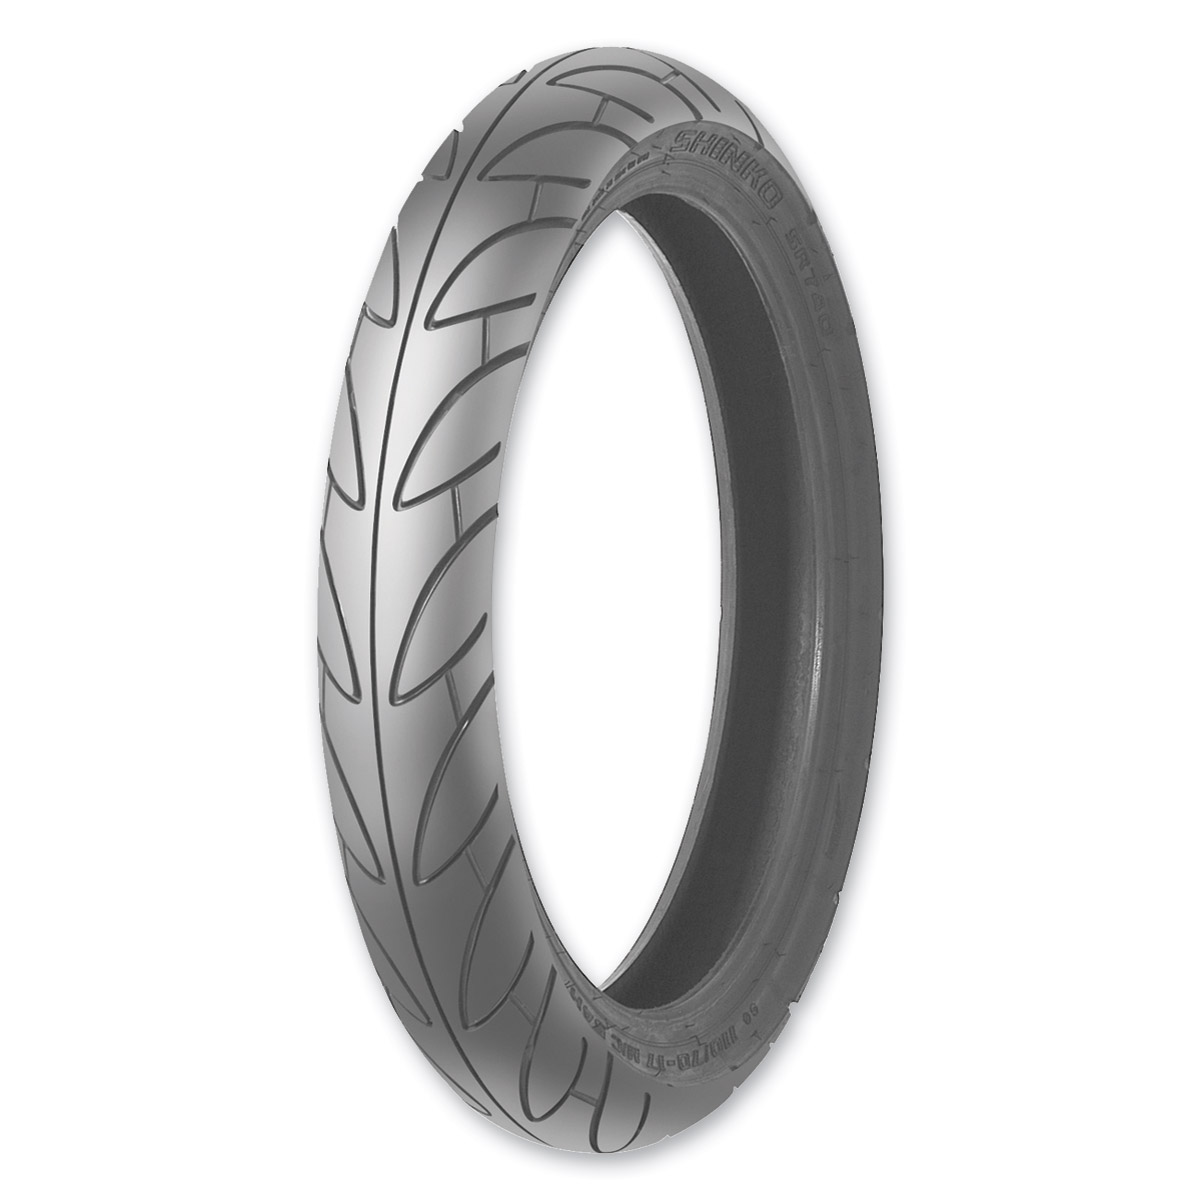 Shinko SR740 110/70-17 Front Tire